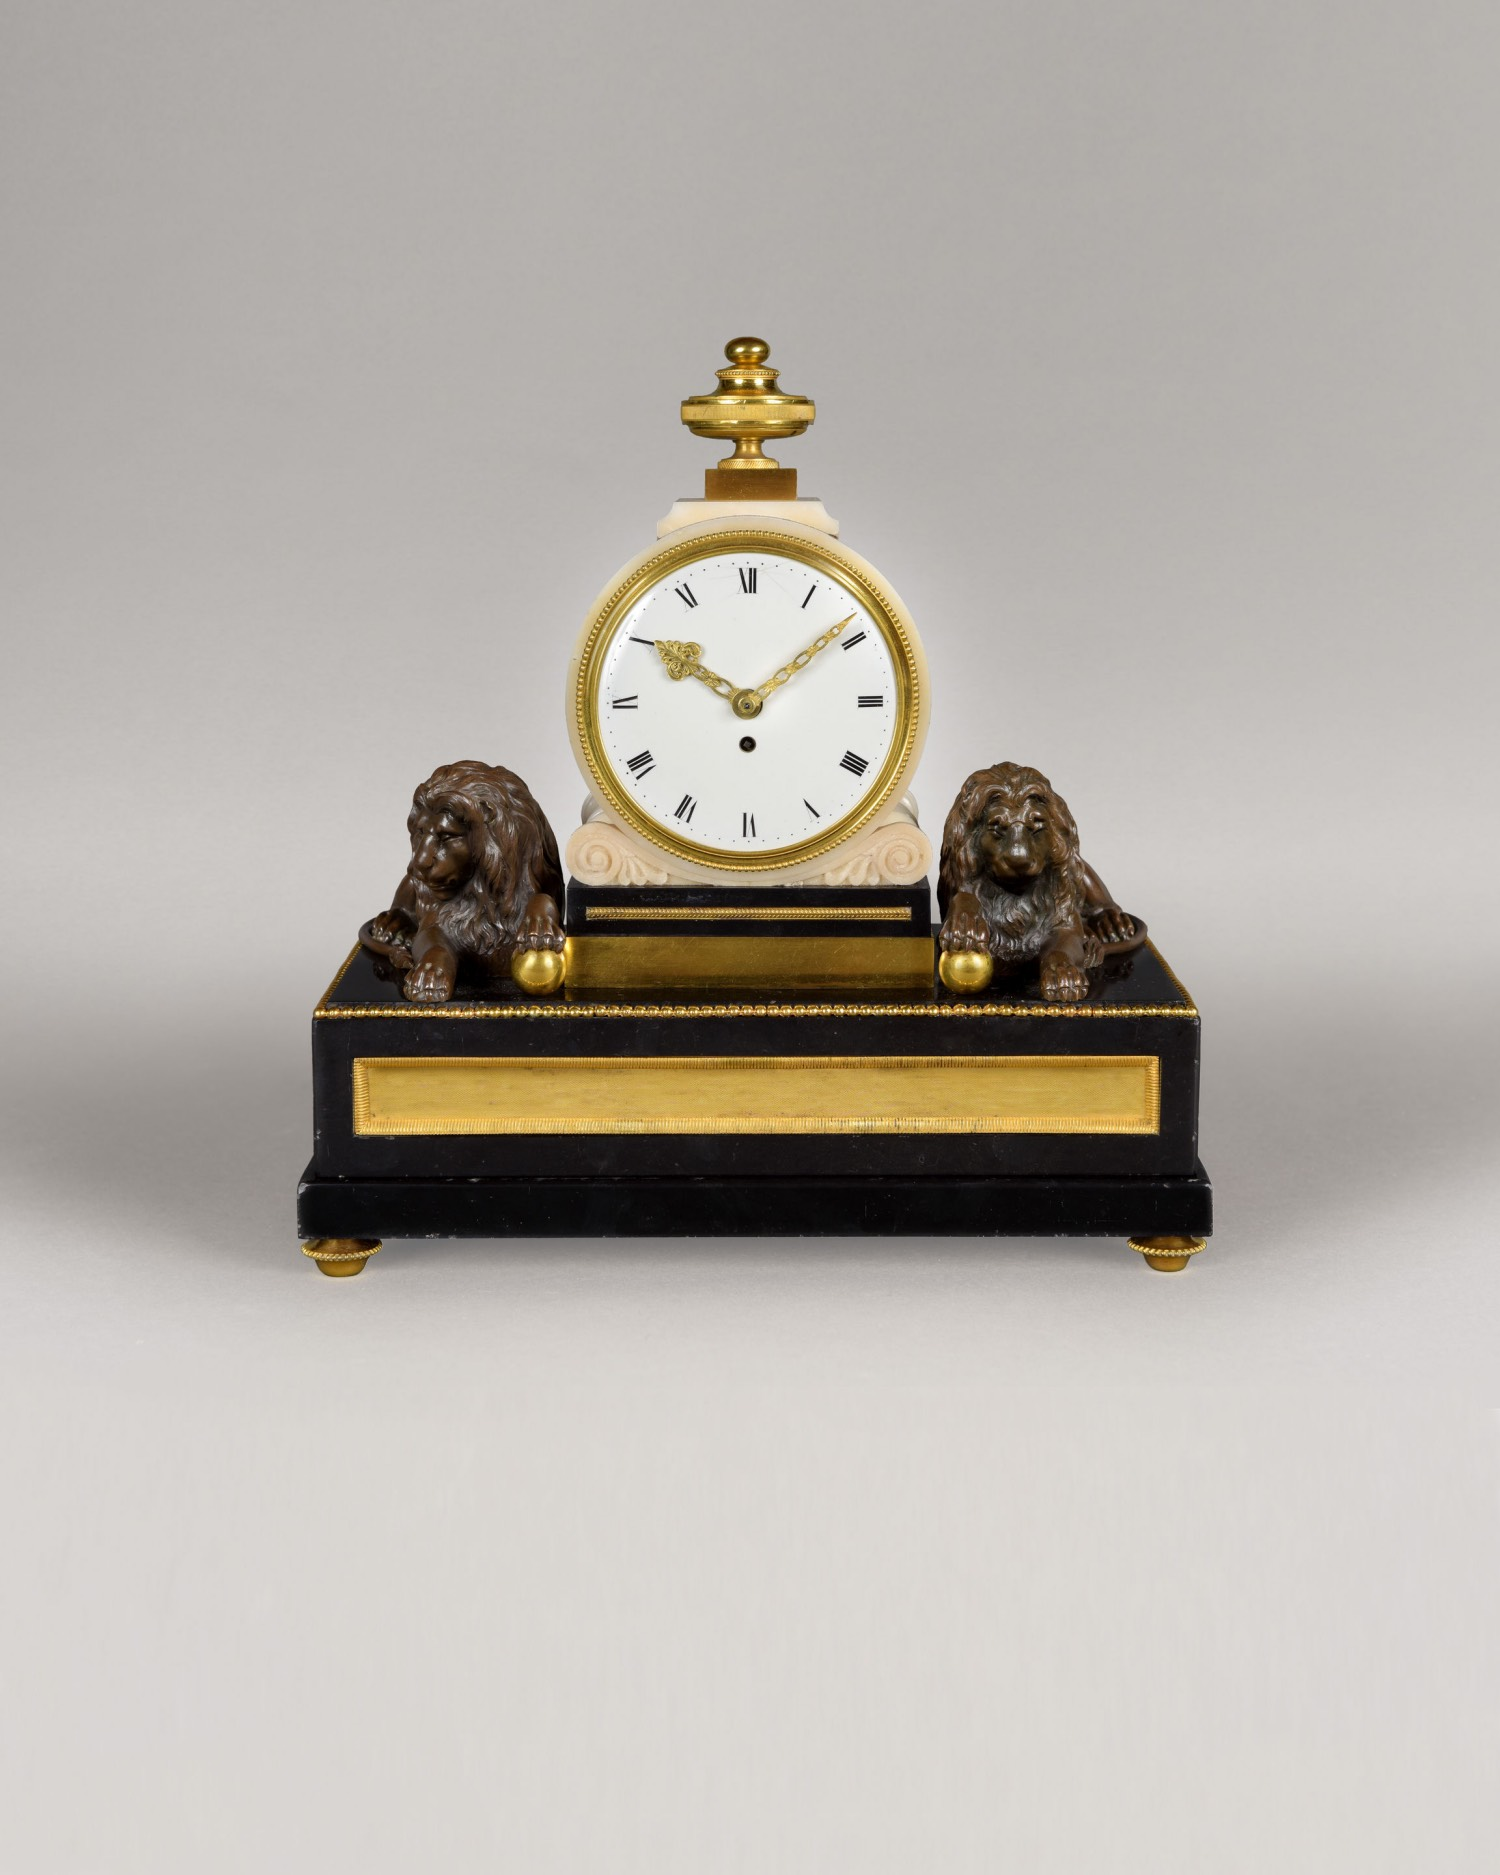 AN EXCEPTIONAL MANTEL TIMEPIECE IN THE MANNER OF VULLIAMY.